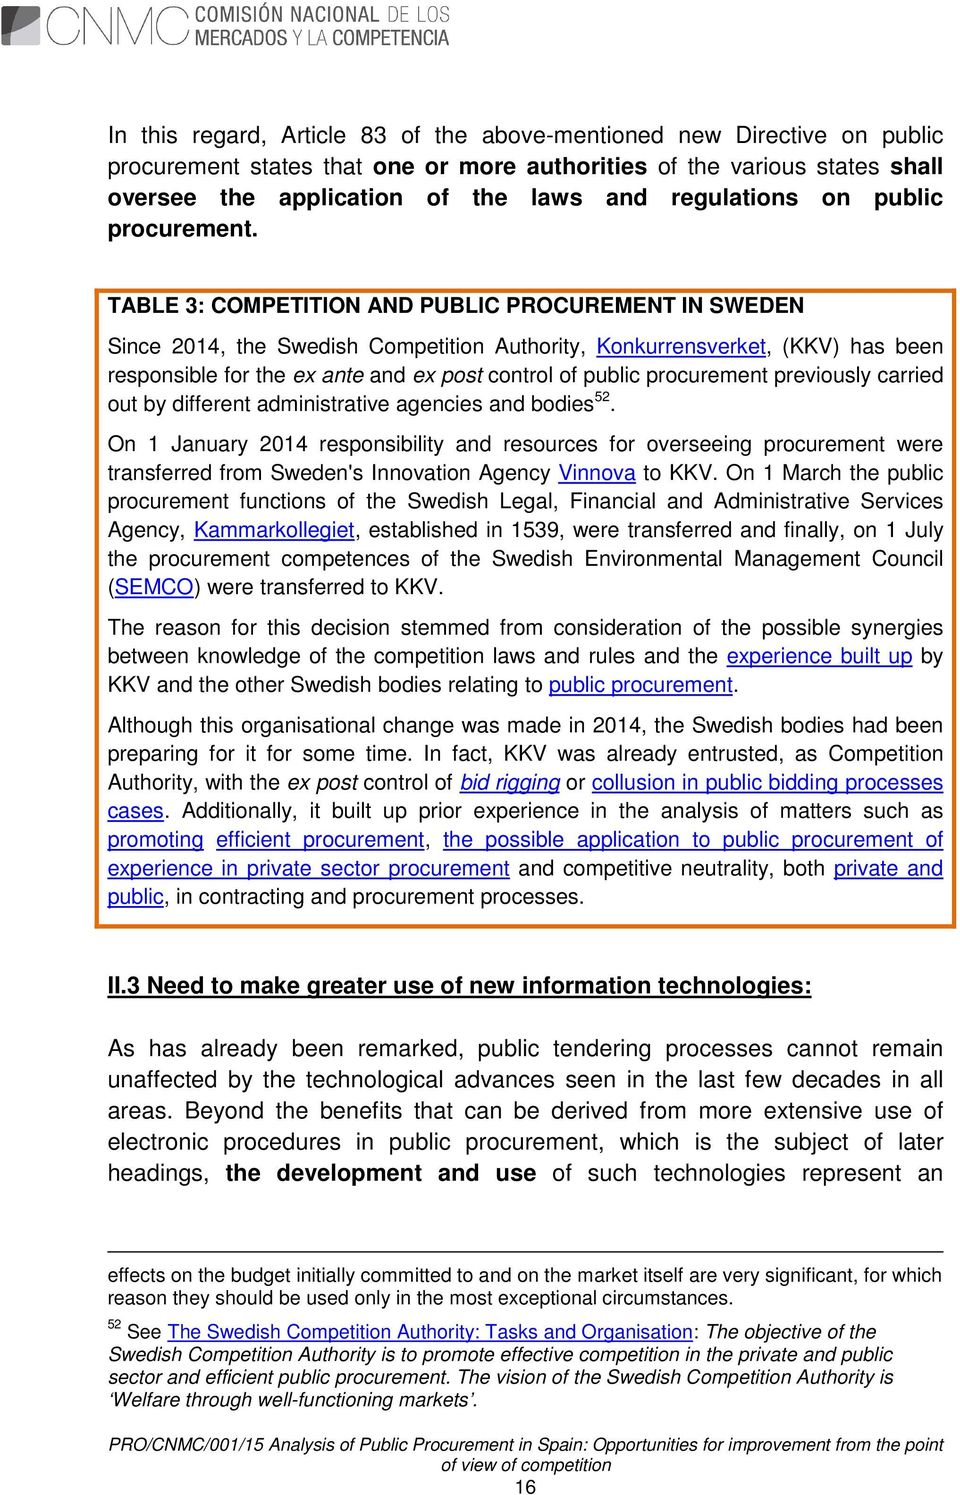 TABLE 3: COMPETITION AND PUBLIC PROCUREMENT IN SWEDEN Since 2014, the Swedish Competition Authority, Konkurrensverket, (KKV) has been responsible for the ex ante and ex post control of public